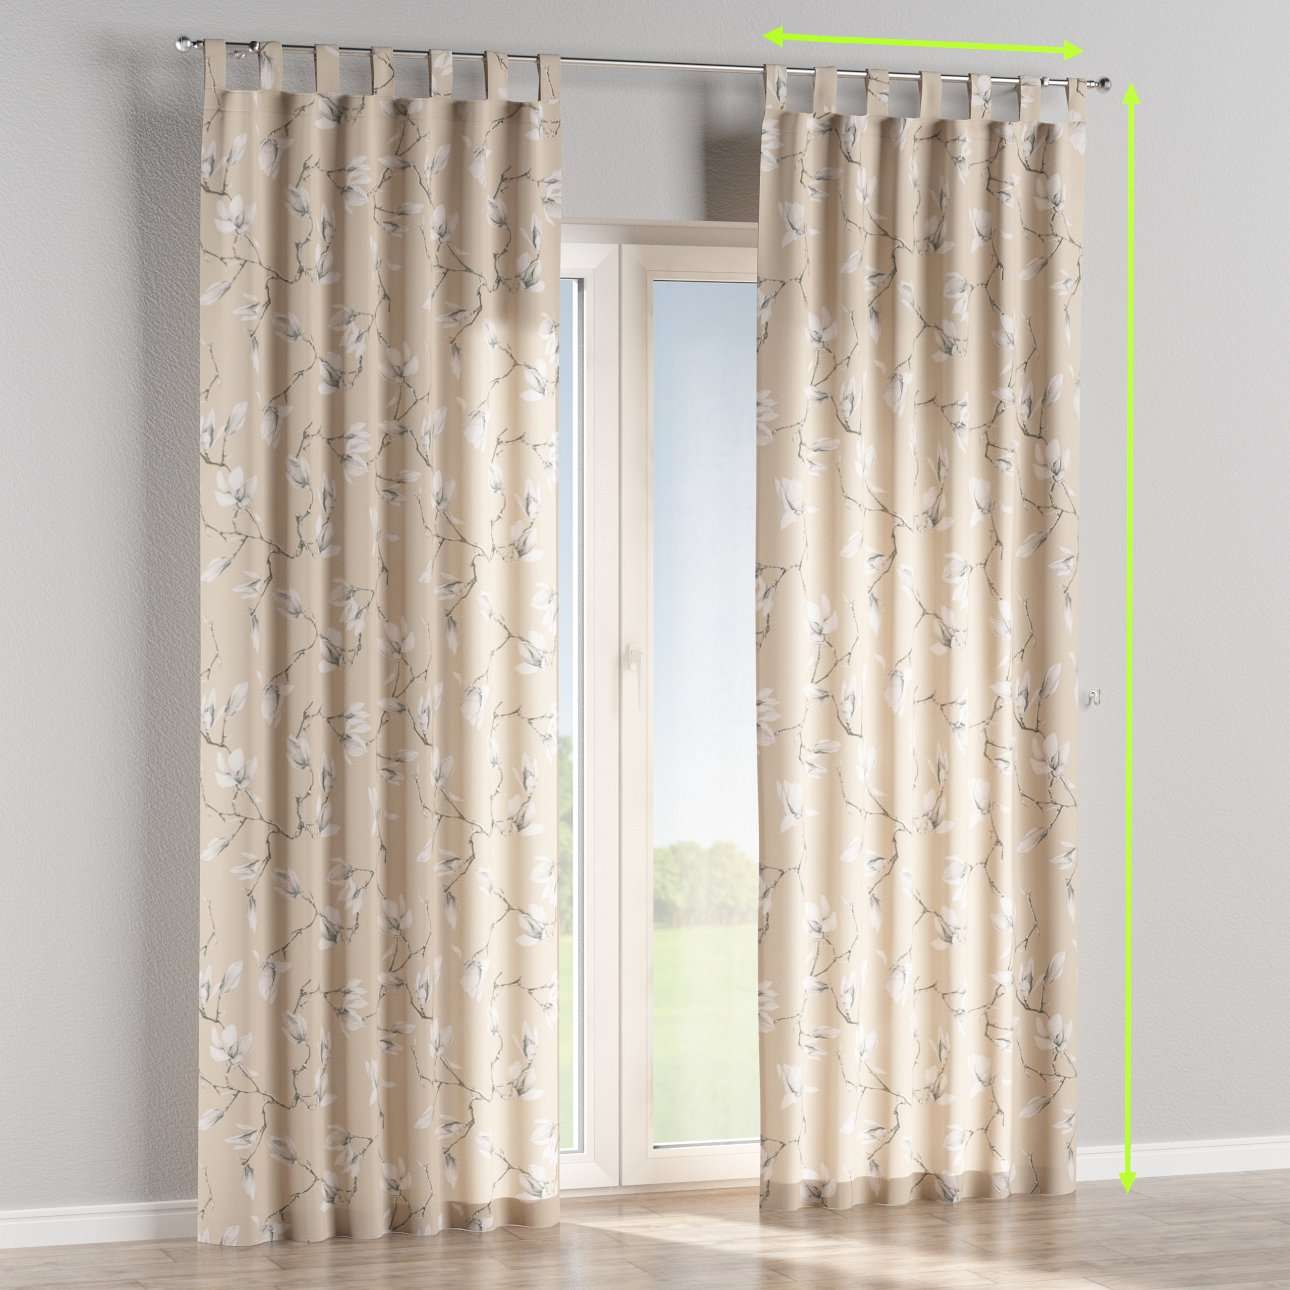 Tab top lined curtains in collection Flowers, fabric: 311-12